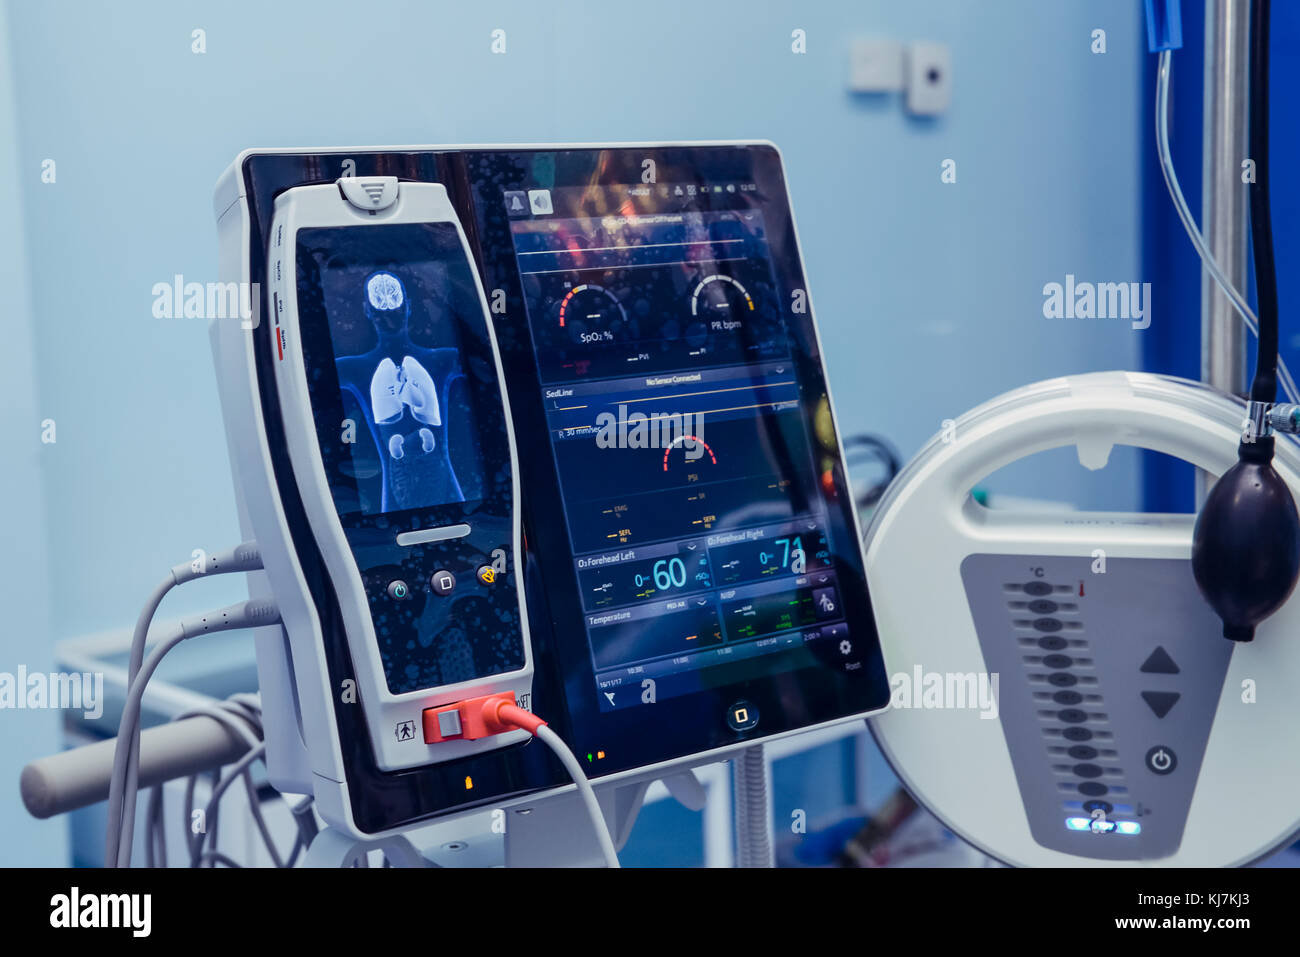 Medicine, health care, emergency and medical equipment concept - extracorporeal life support machine at operating Stock Photo